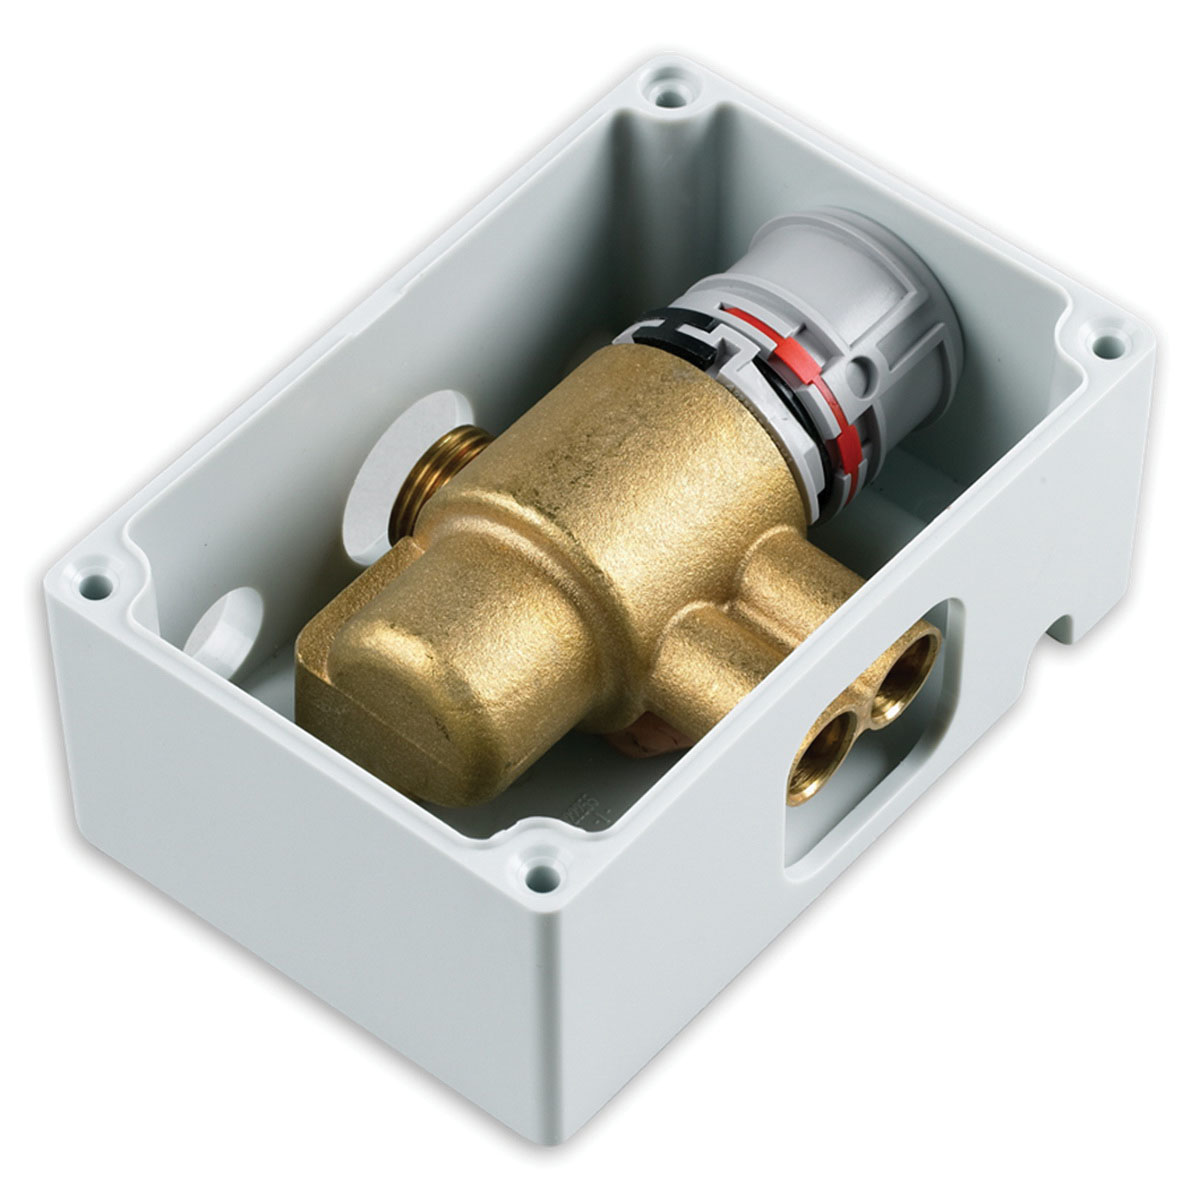 American Standard Selectronic® 605XTMV1070 Stainless Steel Thermostatic Mixing Valve, 3/8 in, Compression, 1 gpm